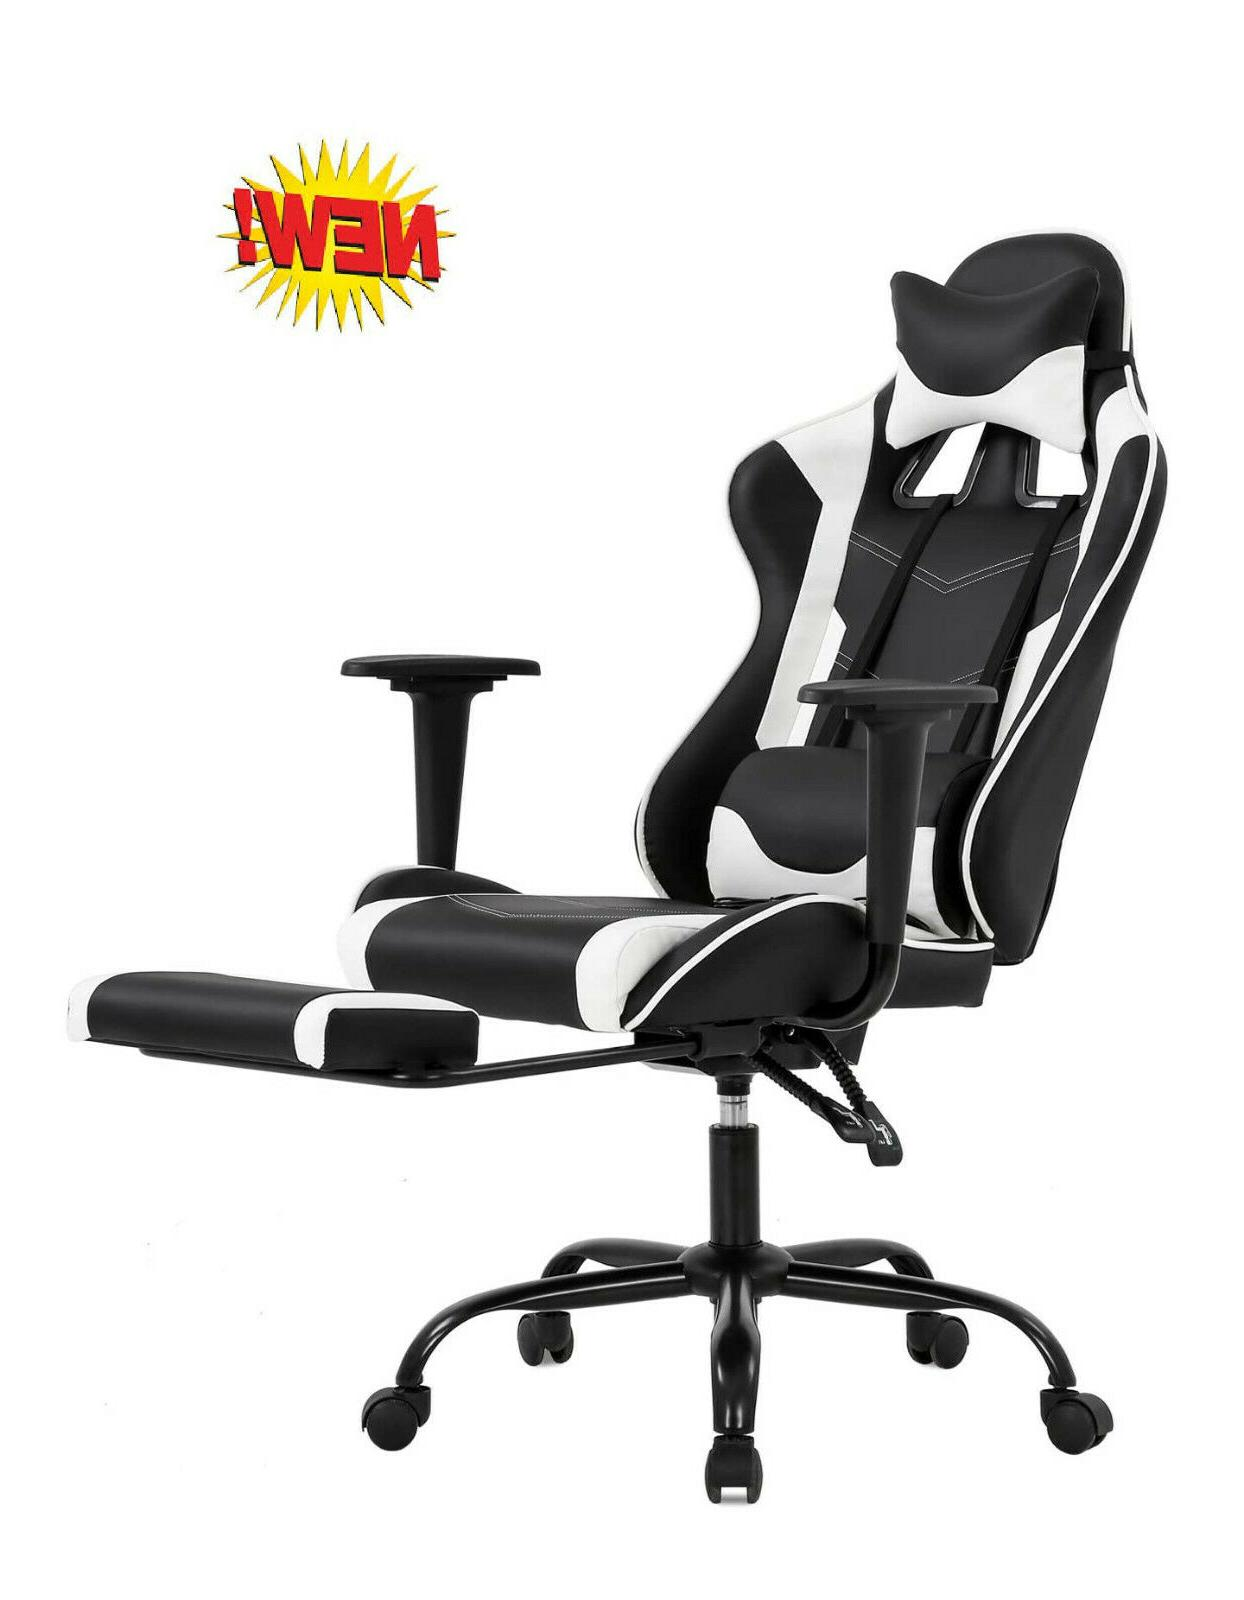 ergonomic office computer chair pc gaming chair